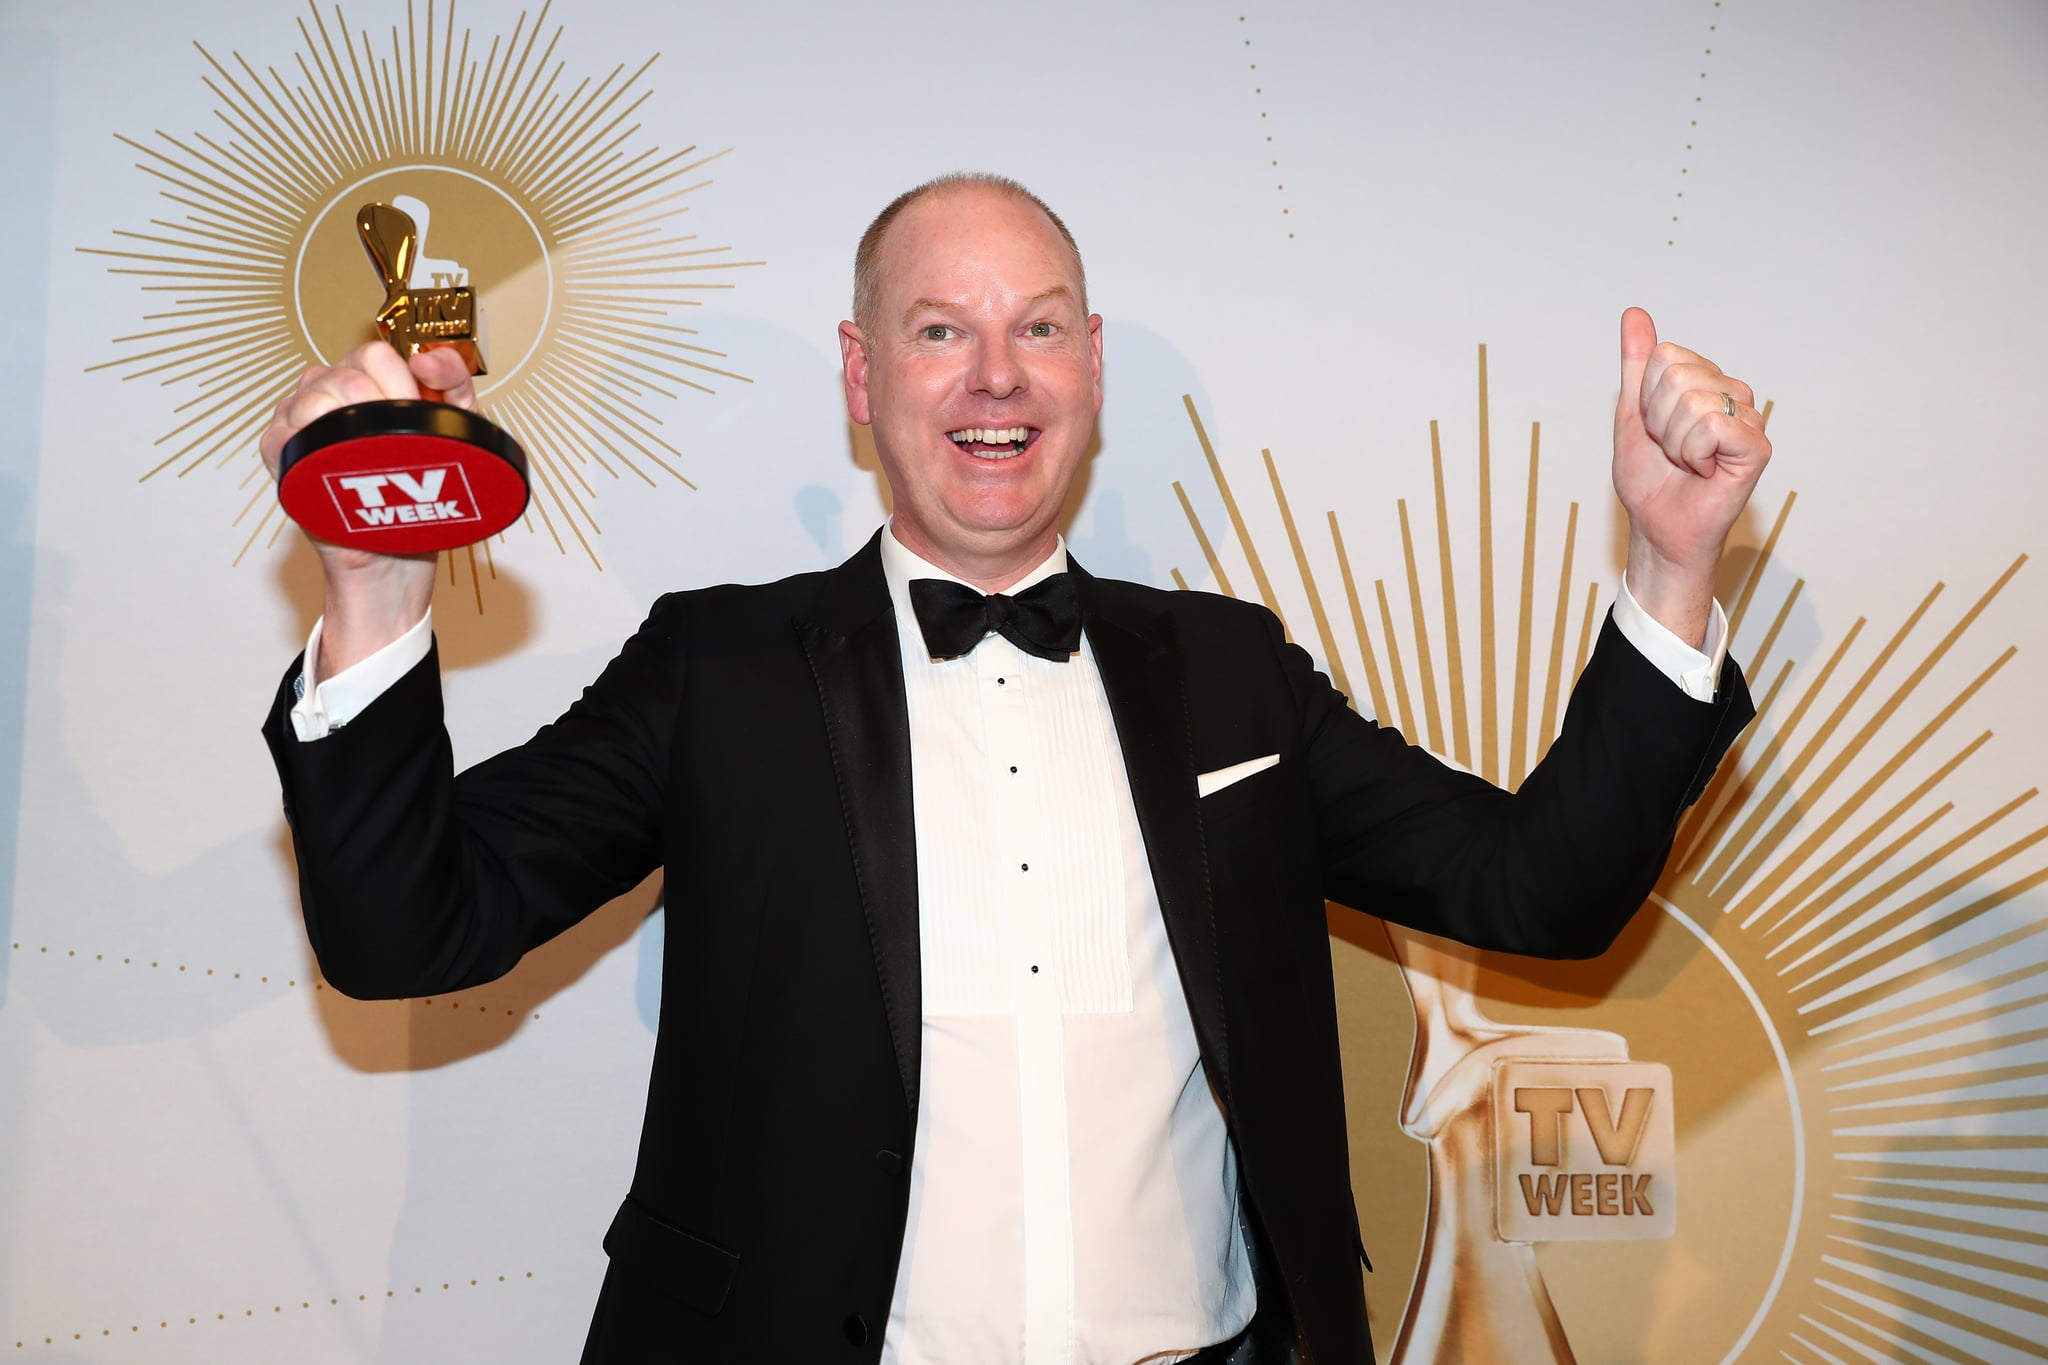 GOLD COAST, AUSTRALIA - JUNE 30: Tom Gleeson poses with the Gold Logie Award for Most Popular Personality during the 61st Annual TV WEEK Logie Awards at The Star Gold Coast on June 30, 2019 on the Gold Coast, Australia. (Photo by Chris Hyde/Getty Images)